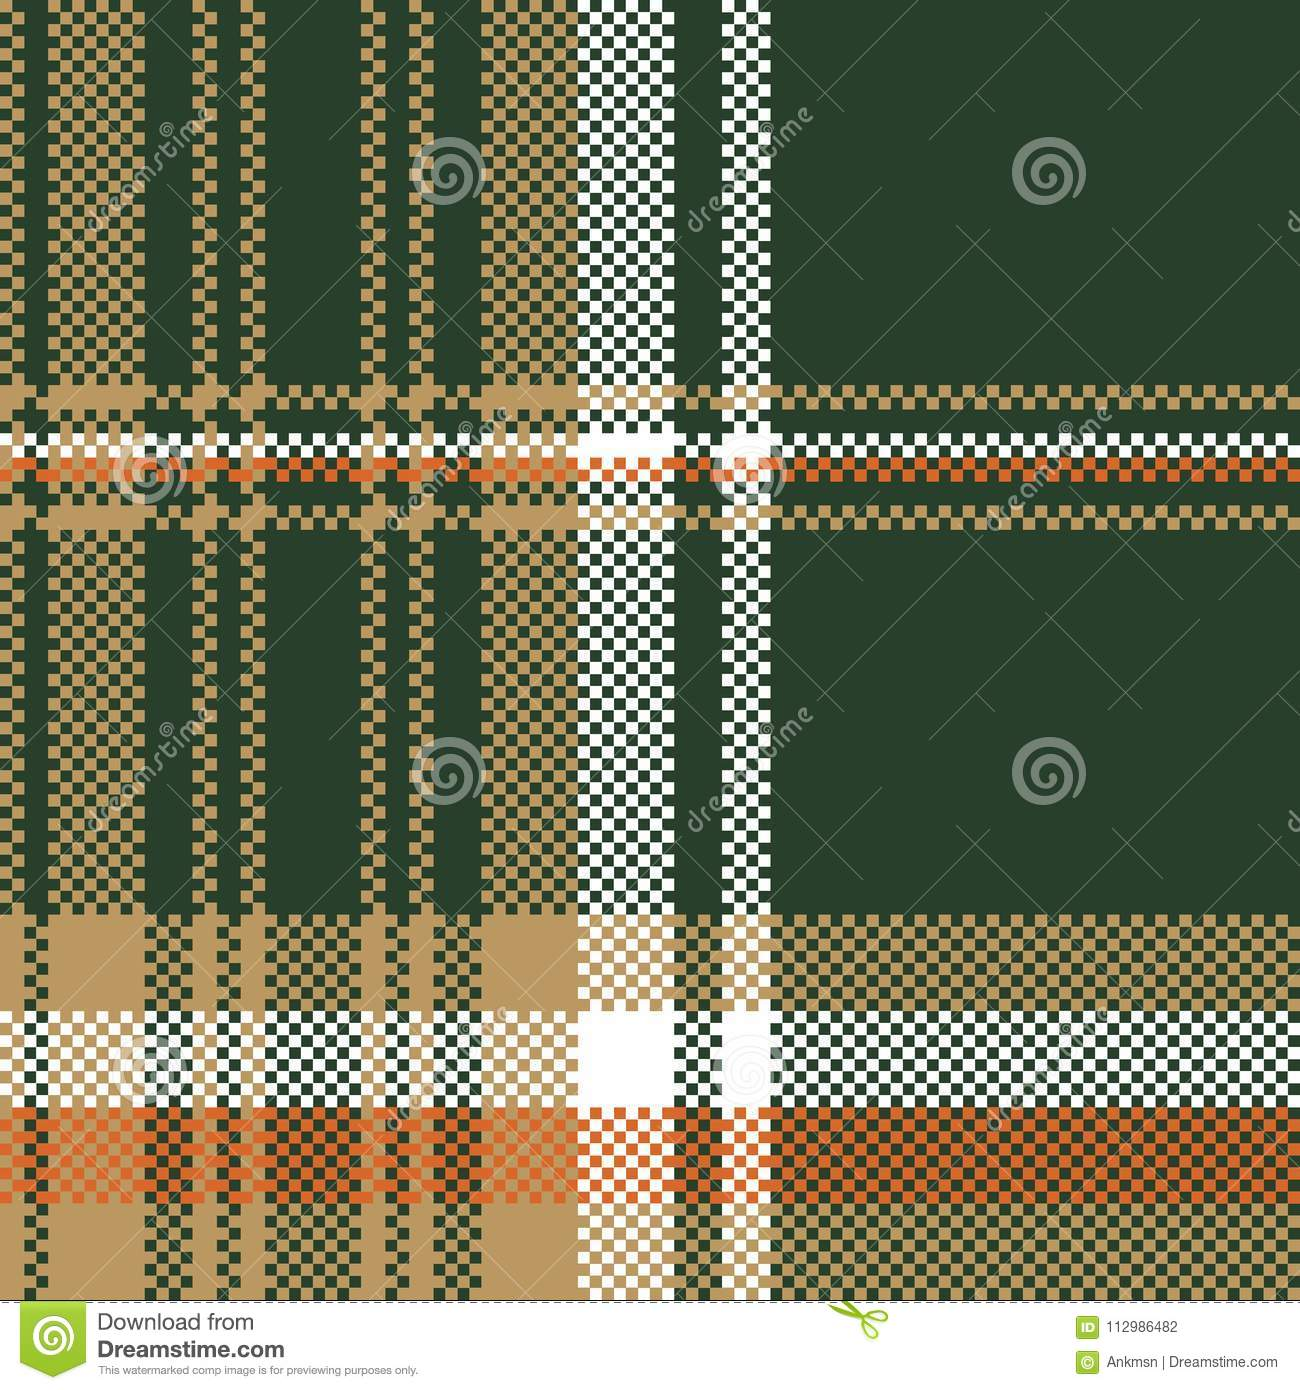 Green pixel plaid fabric seamless pattern